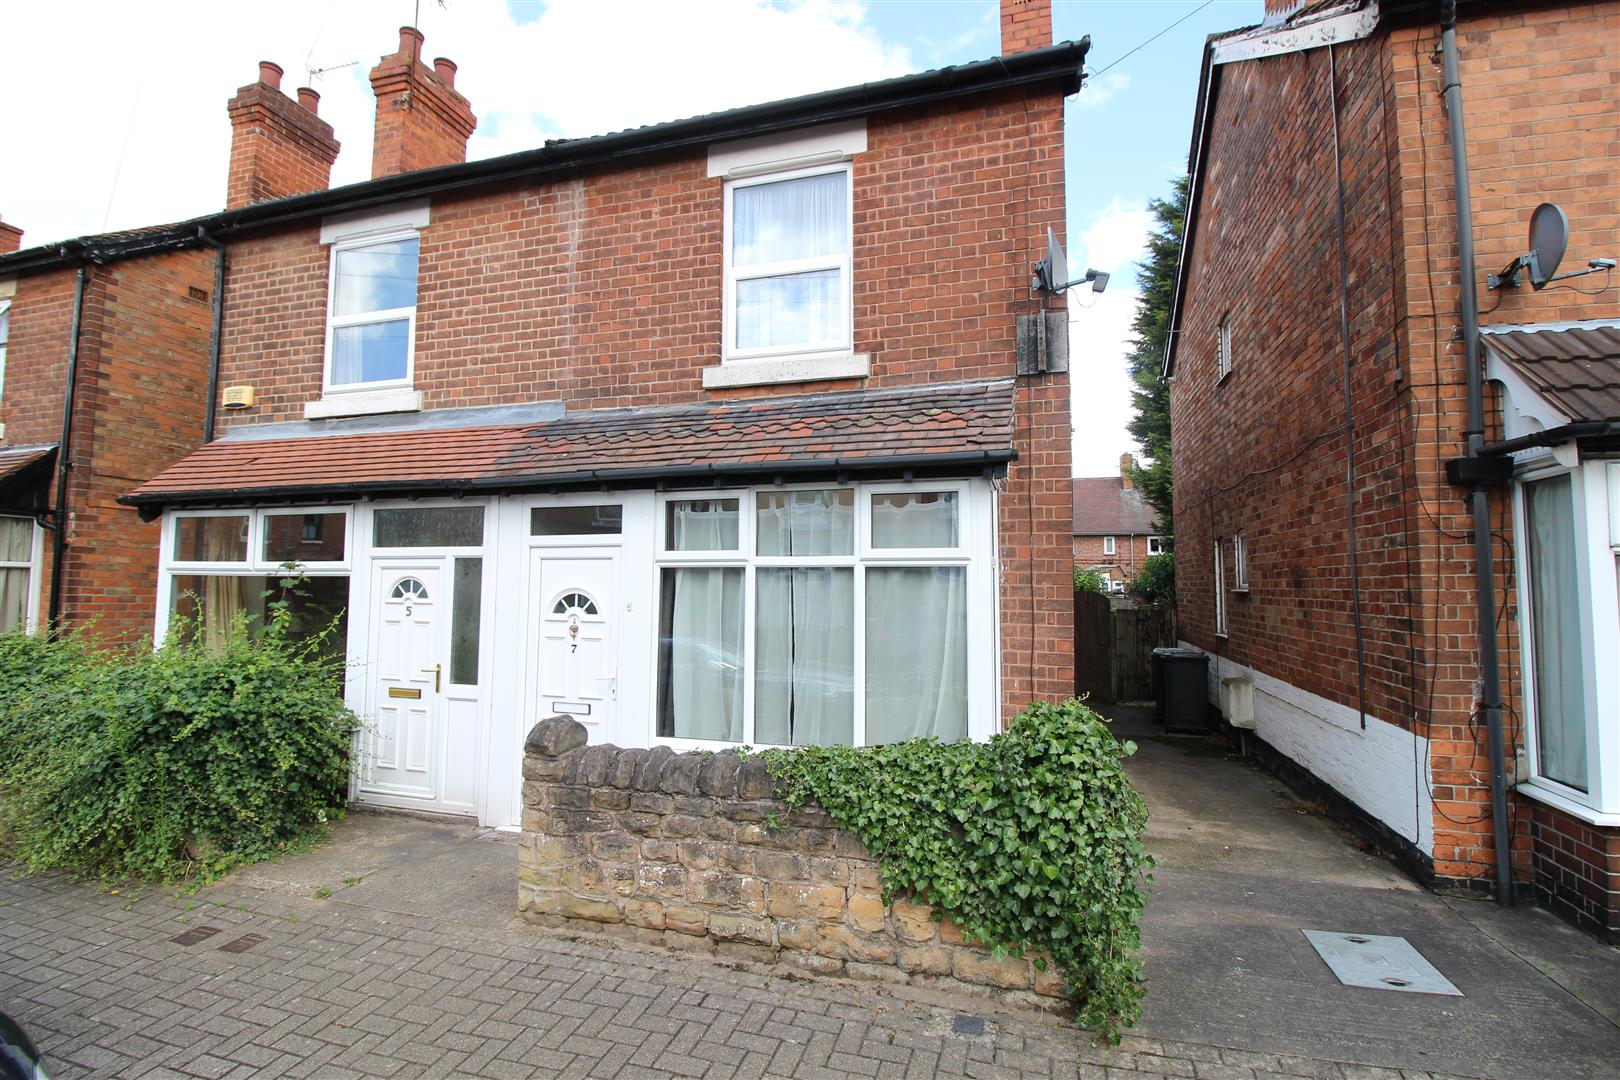 2 Bedrooms House for sale in Alexandra Crescent, Beeston, Nottingham